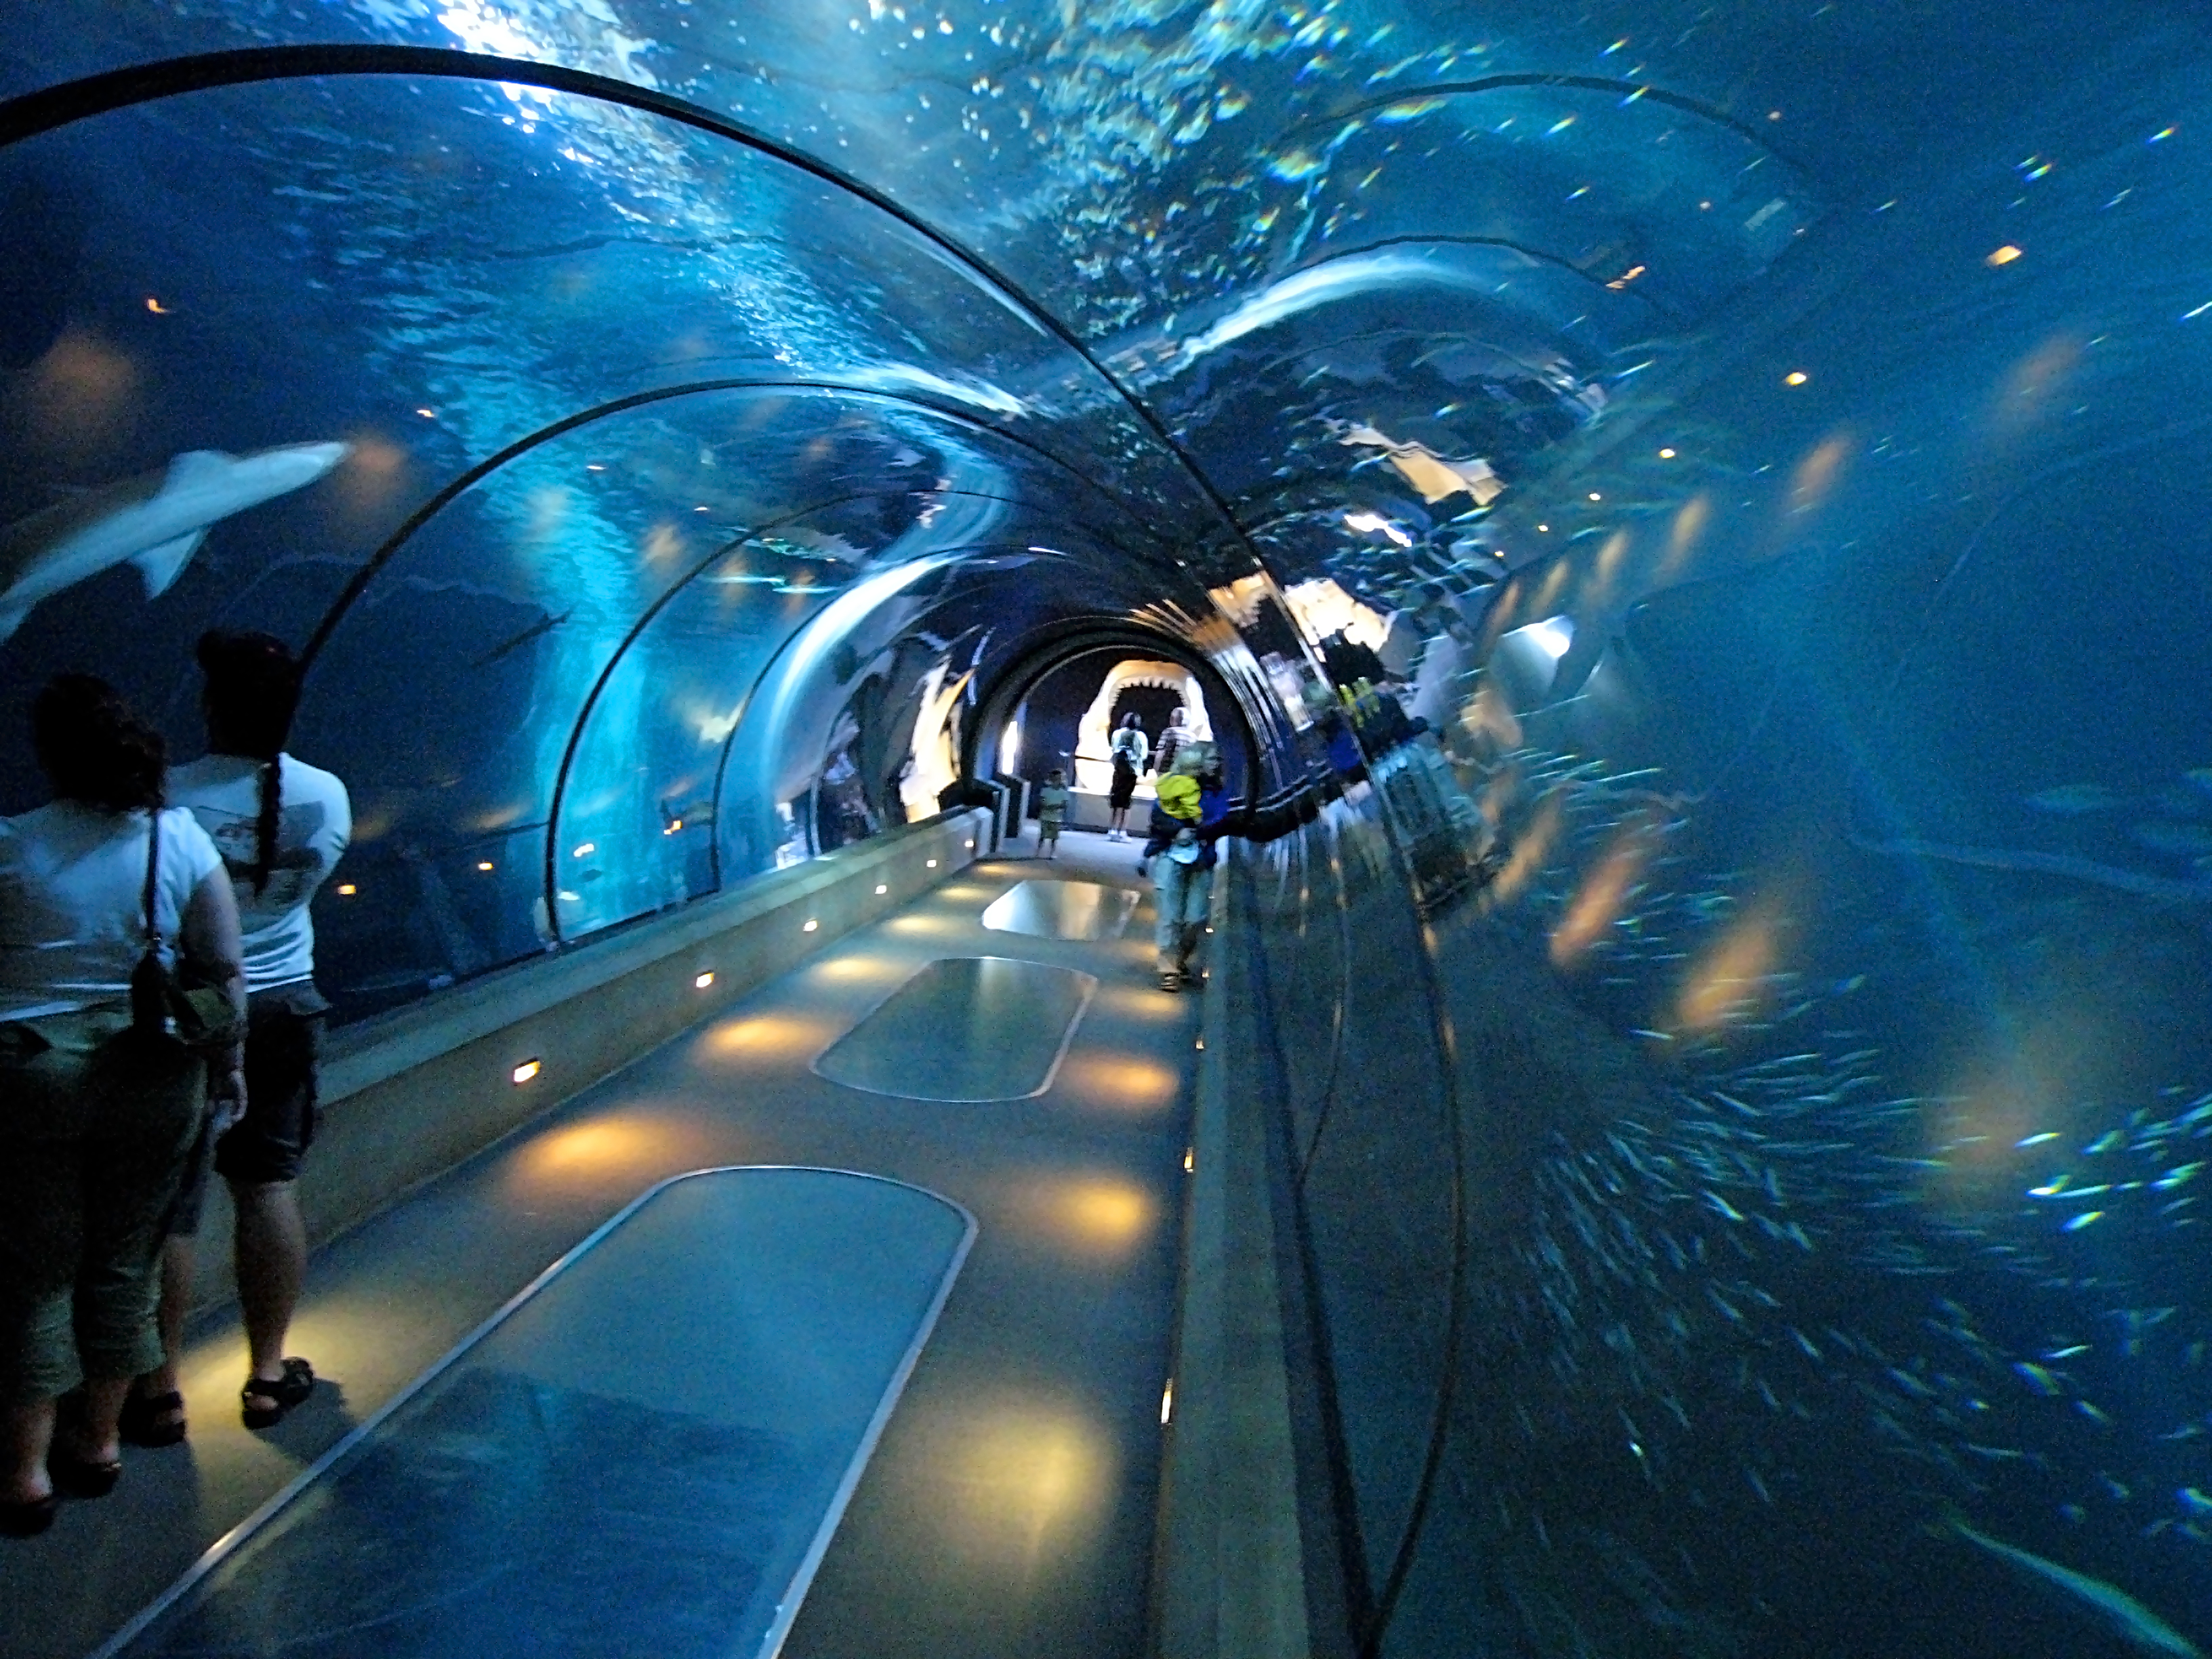 File Aquarium Tunnel Jpg Wikipedia